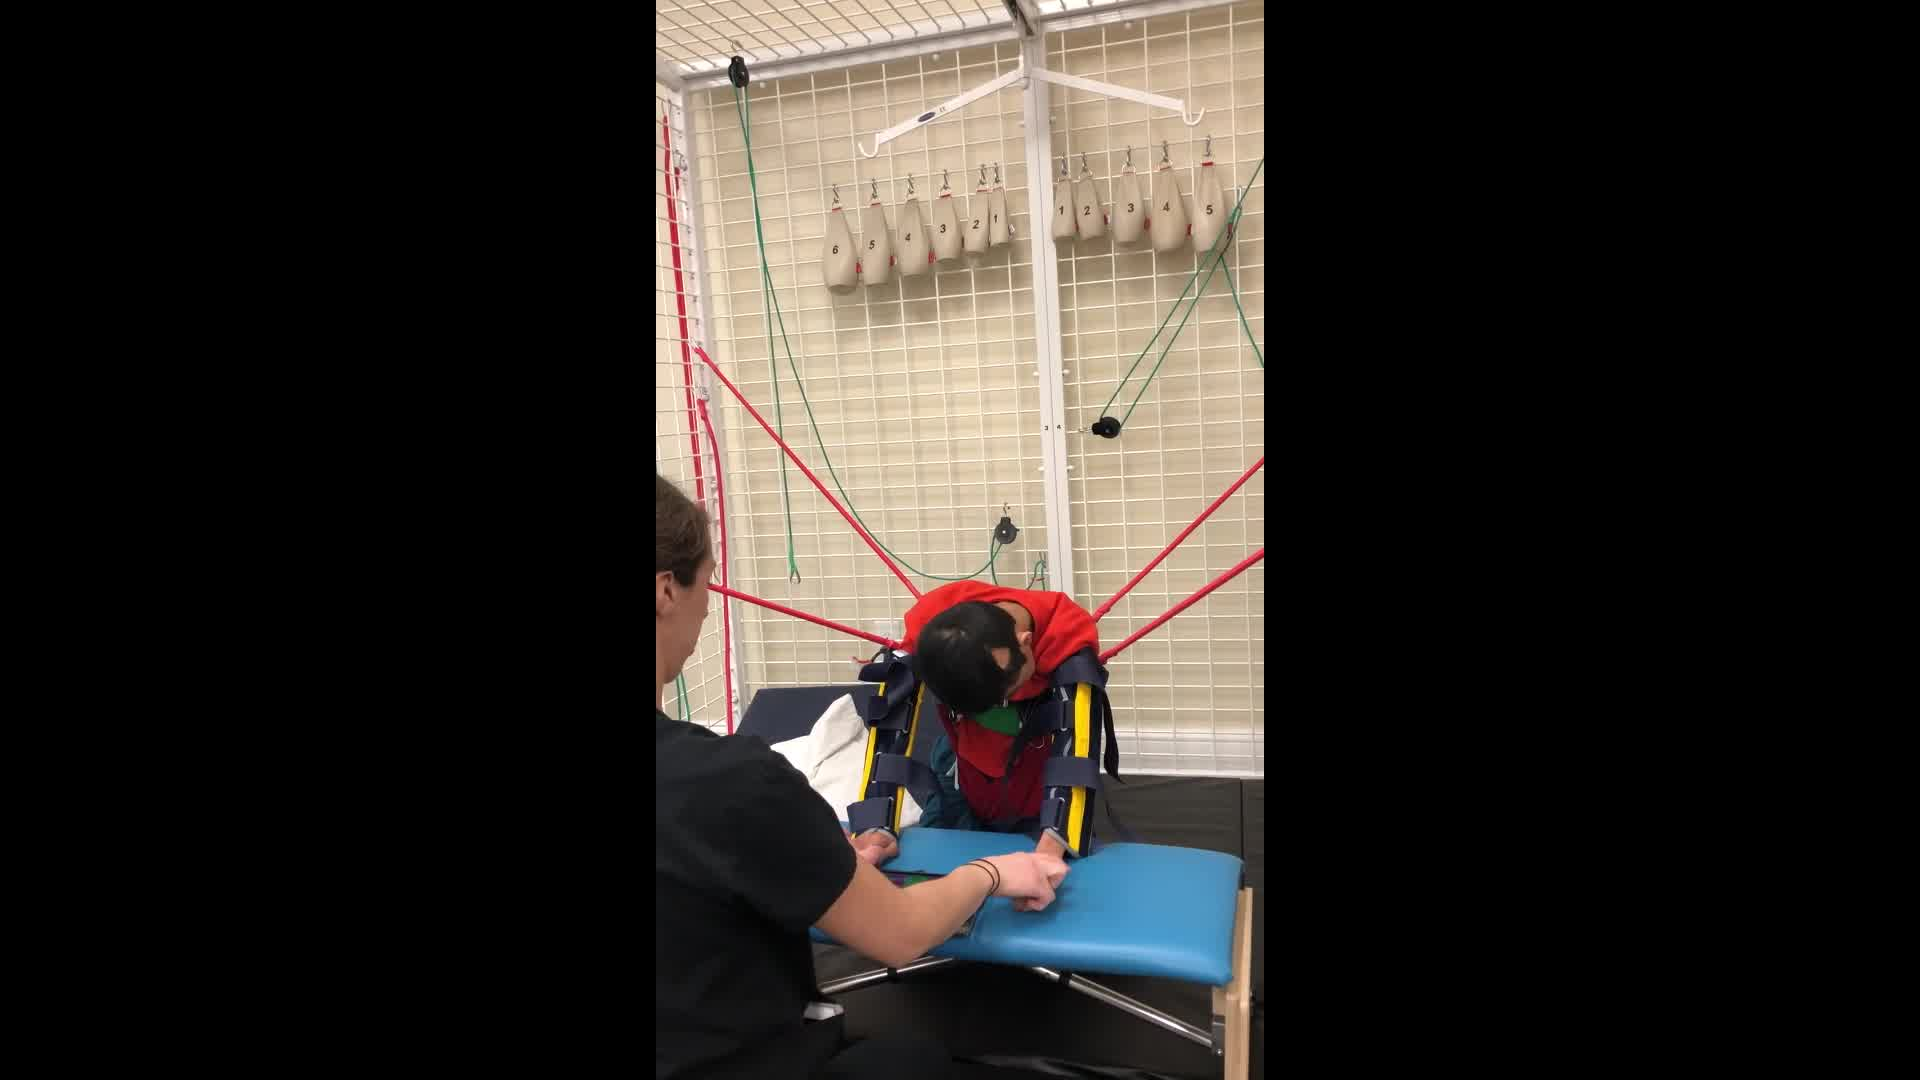 Specialized therapy is helping this child's physical coordination